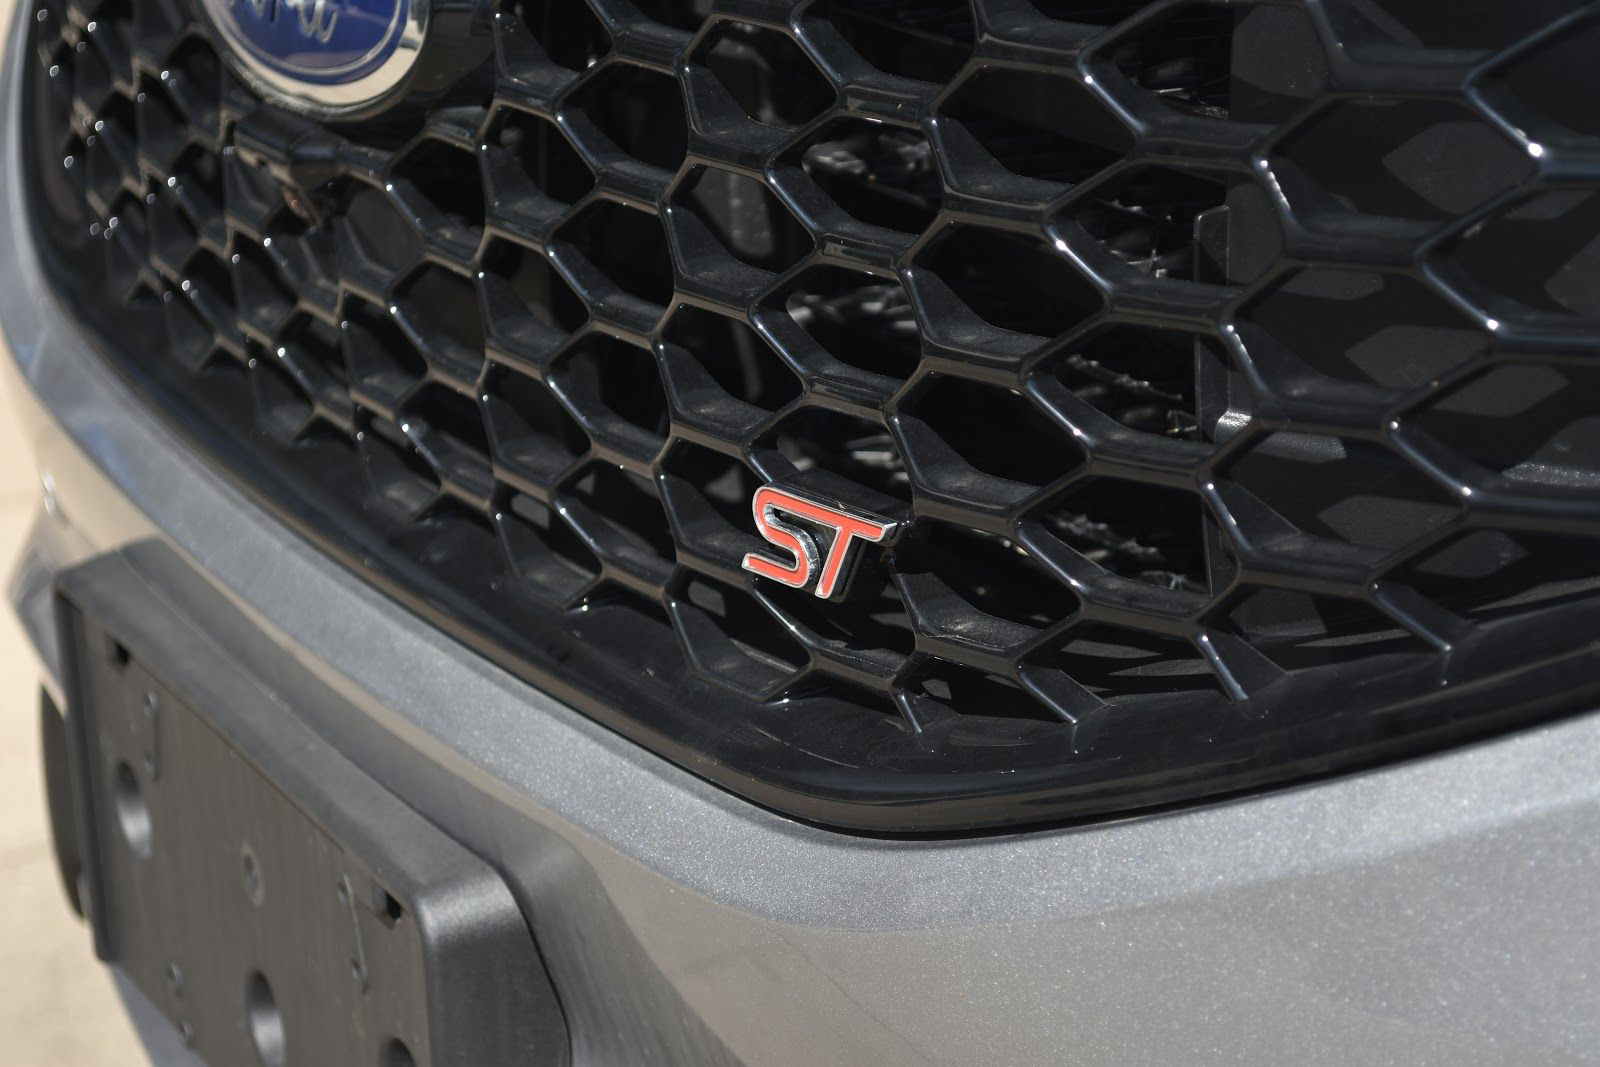 2020 Ford Edge ST Front Grill and Logo